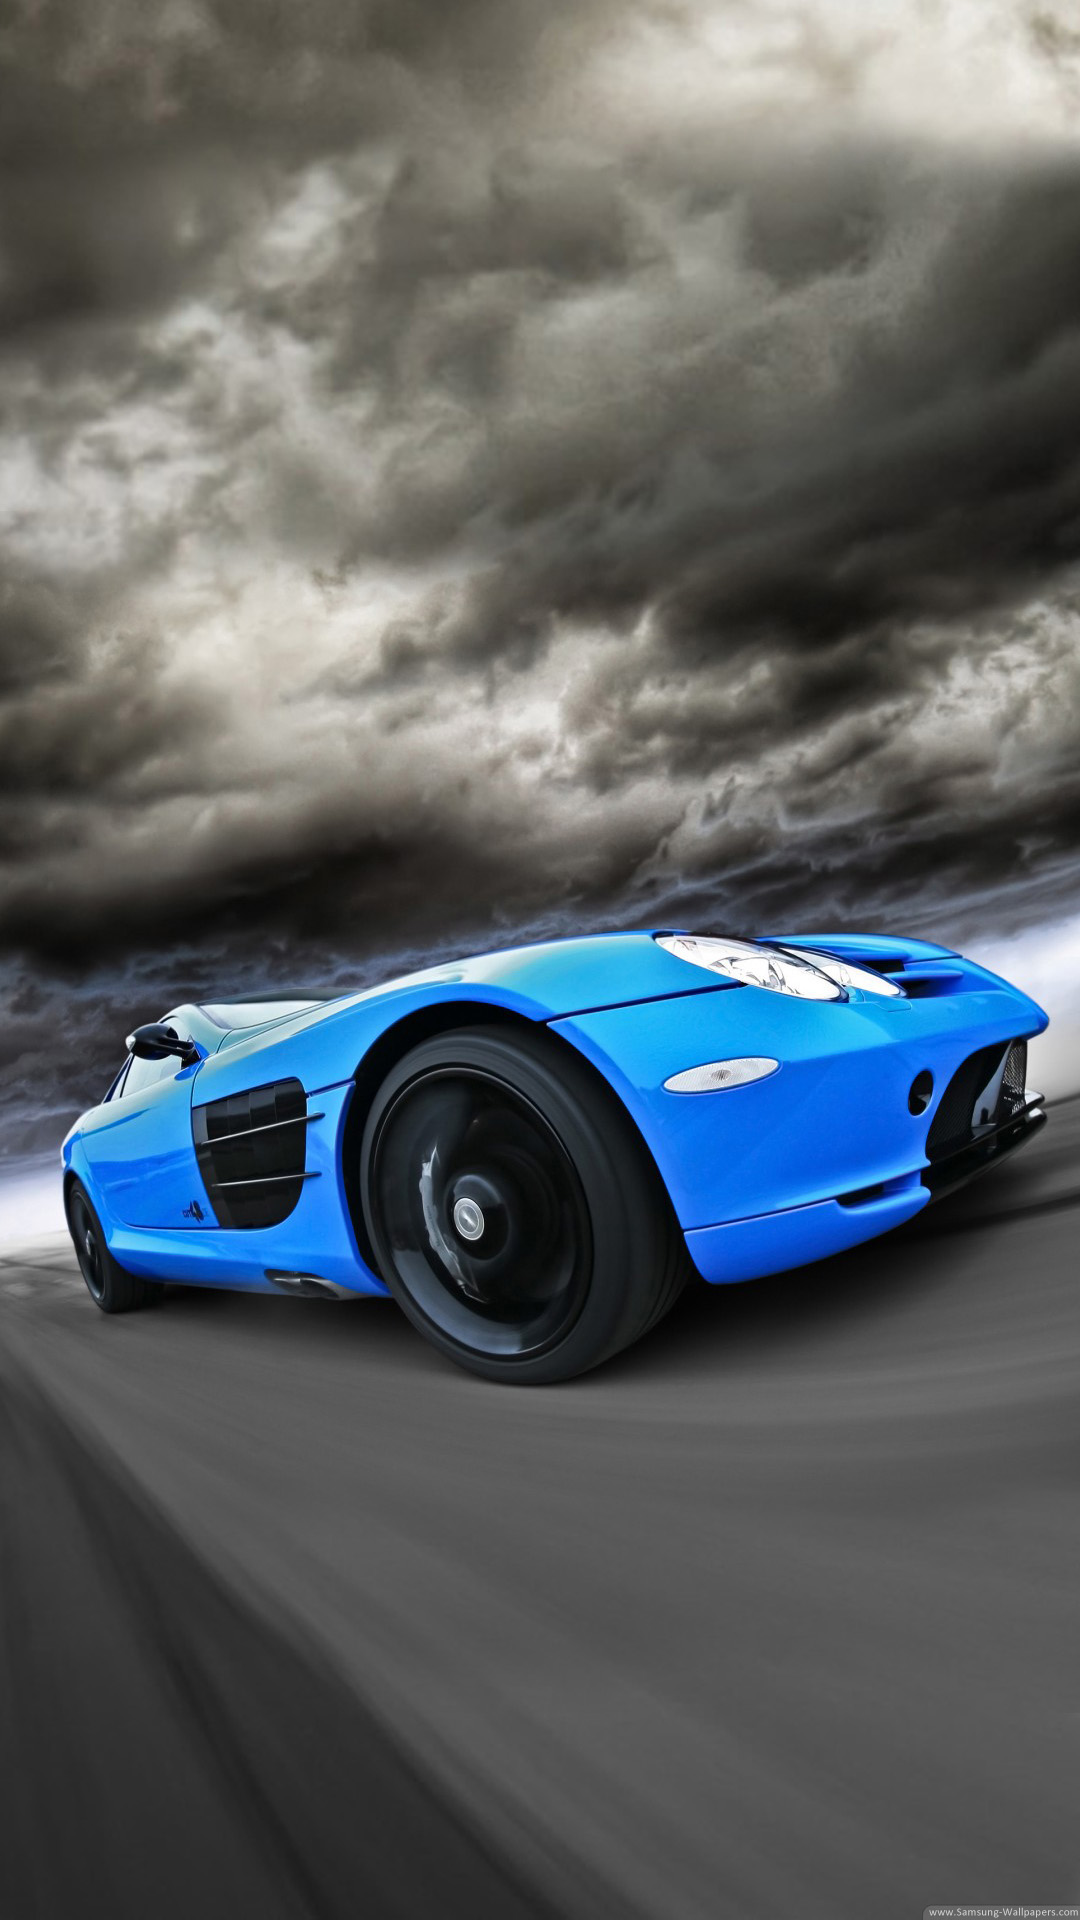 Awesome Hd Car Wallpapers Blue Car Wallpaper Iphone 1080x1920 Wallpaper Teahub Io